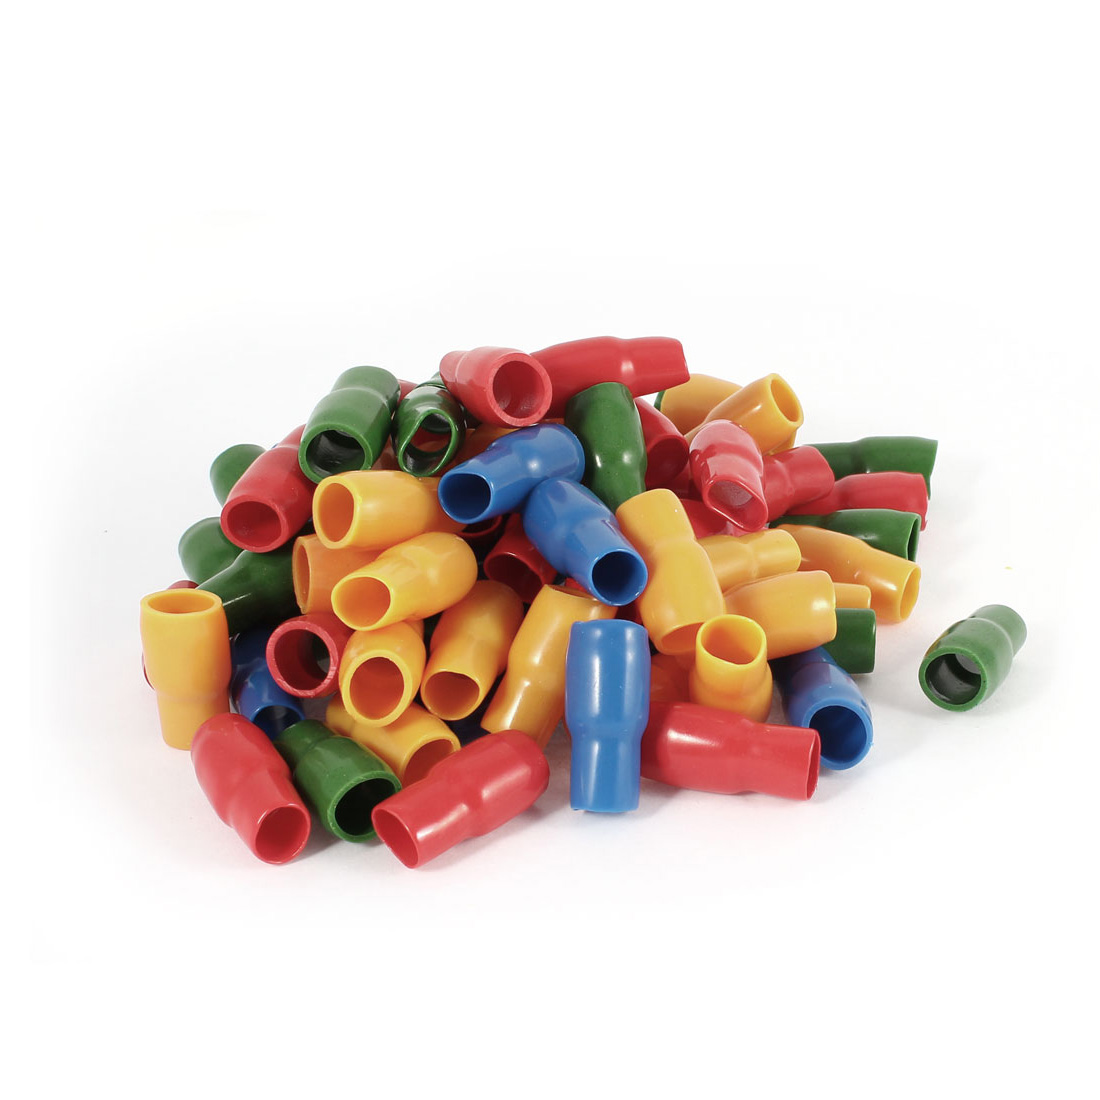 80 Pcs Soft PVC Wire V-22 25mm2 Crimp Terminal End Insulated Sleeves Cover Green Red Blue Orange